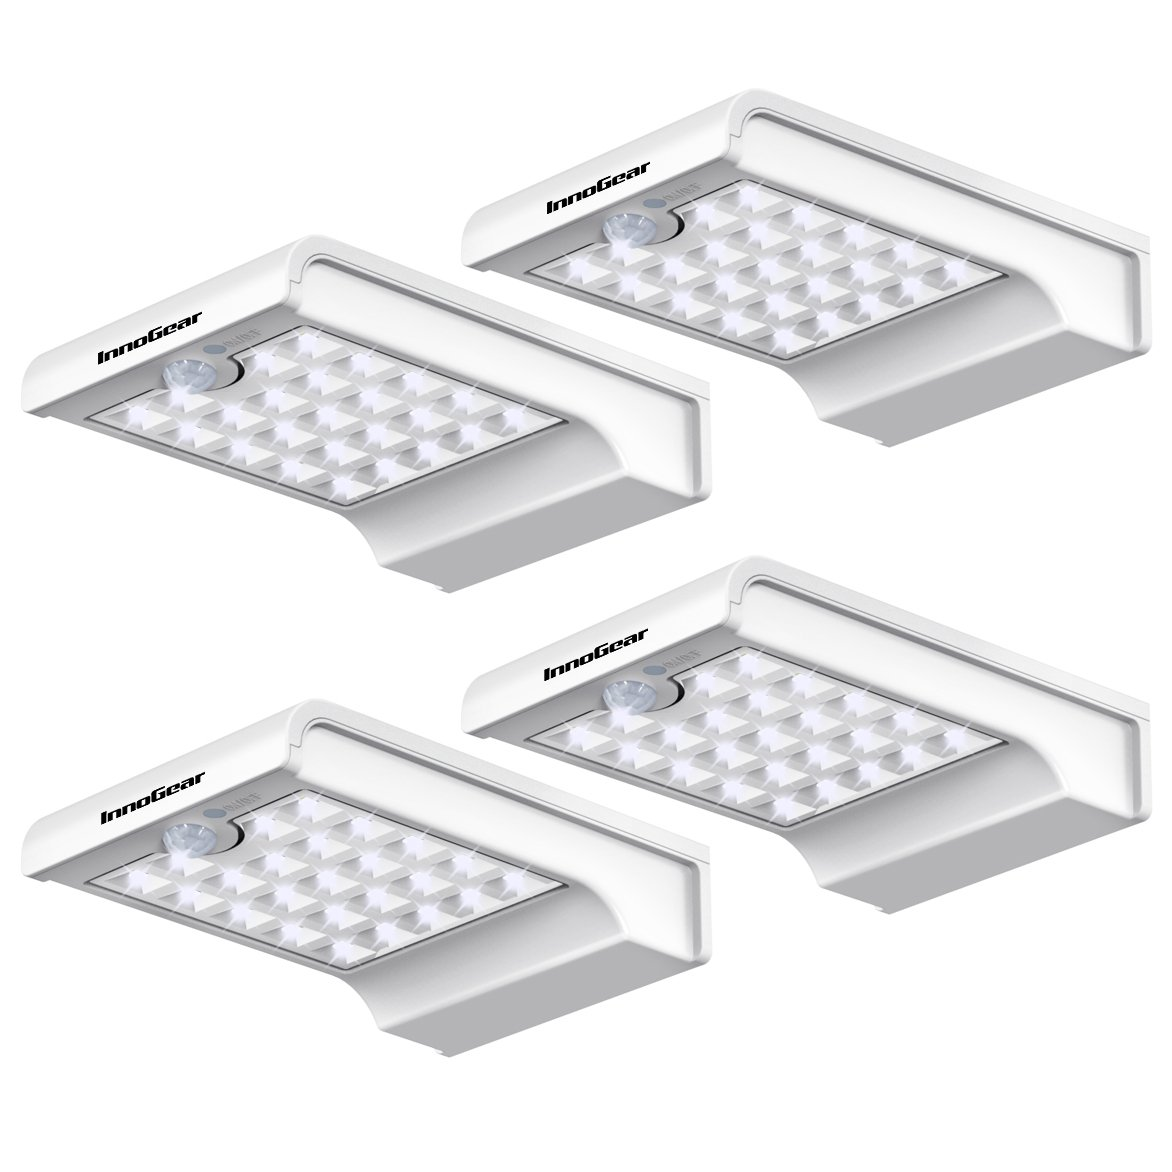 InnoGear 24 LED Solar Lights Motion Sensor Wall Light Auto On/Off and Dim to Bright Outdoor Security Light Night Light for Gutter Patio Garden Path, Pack of 4